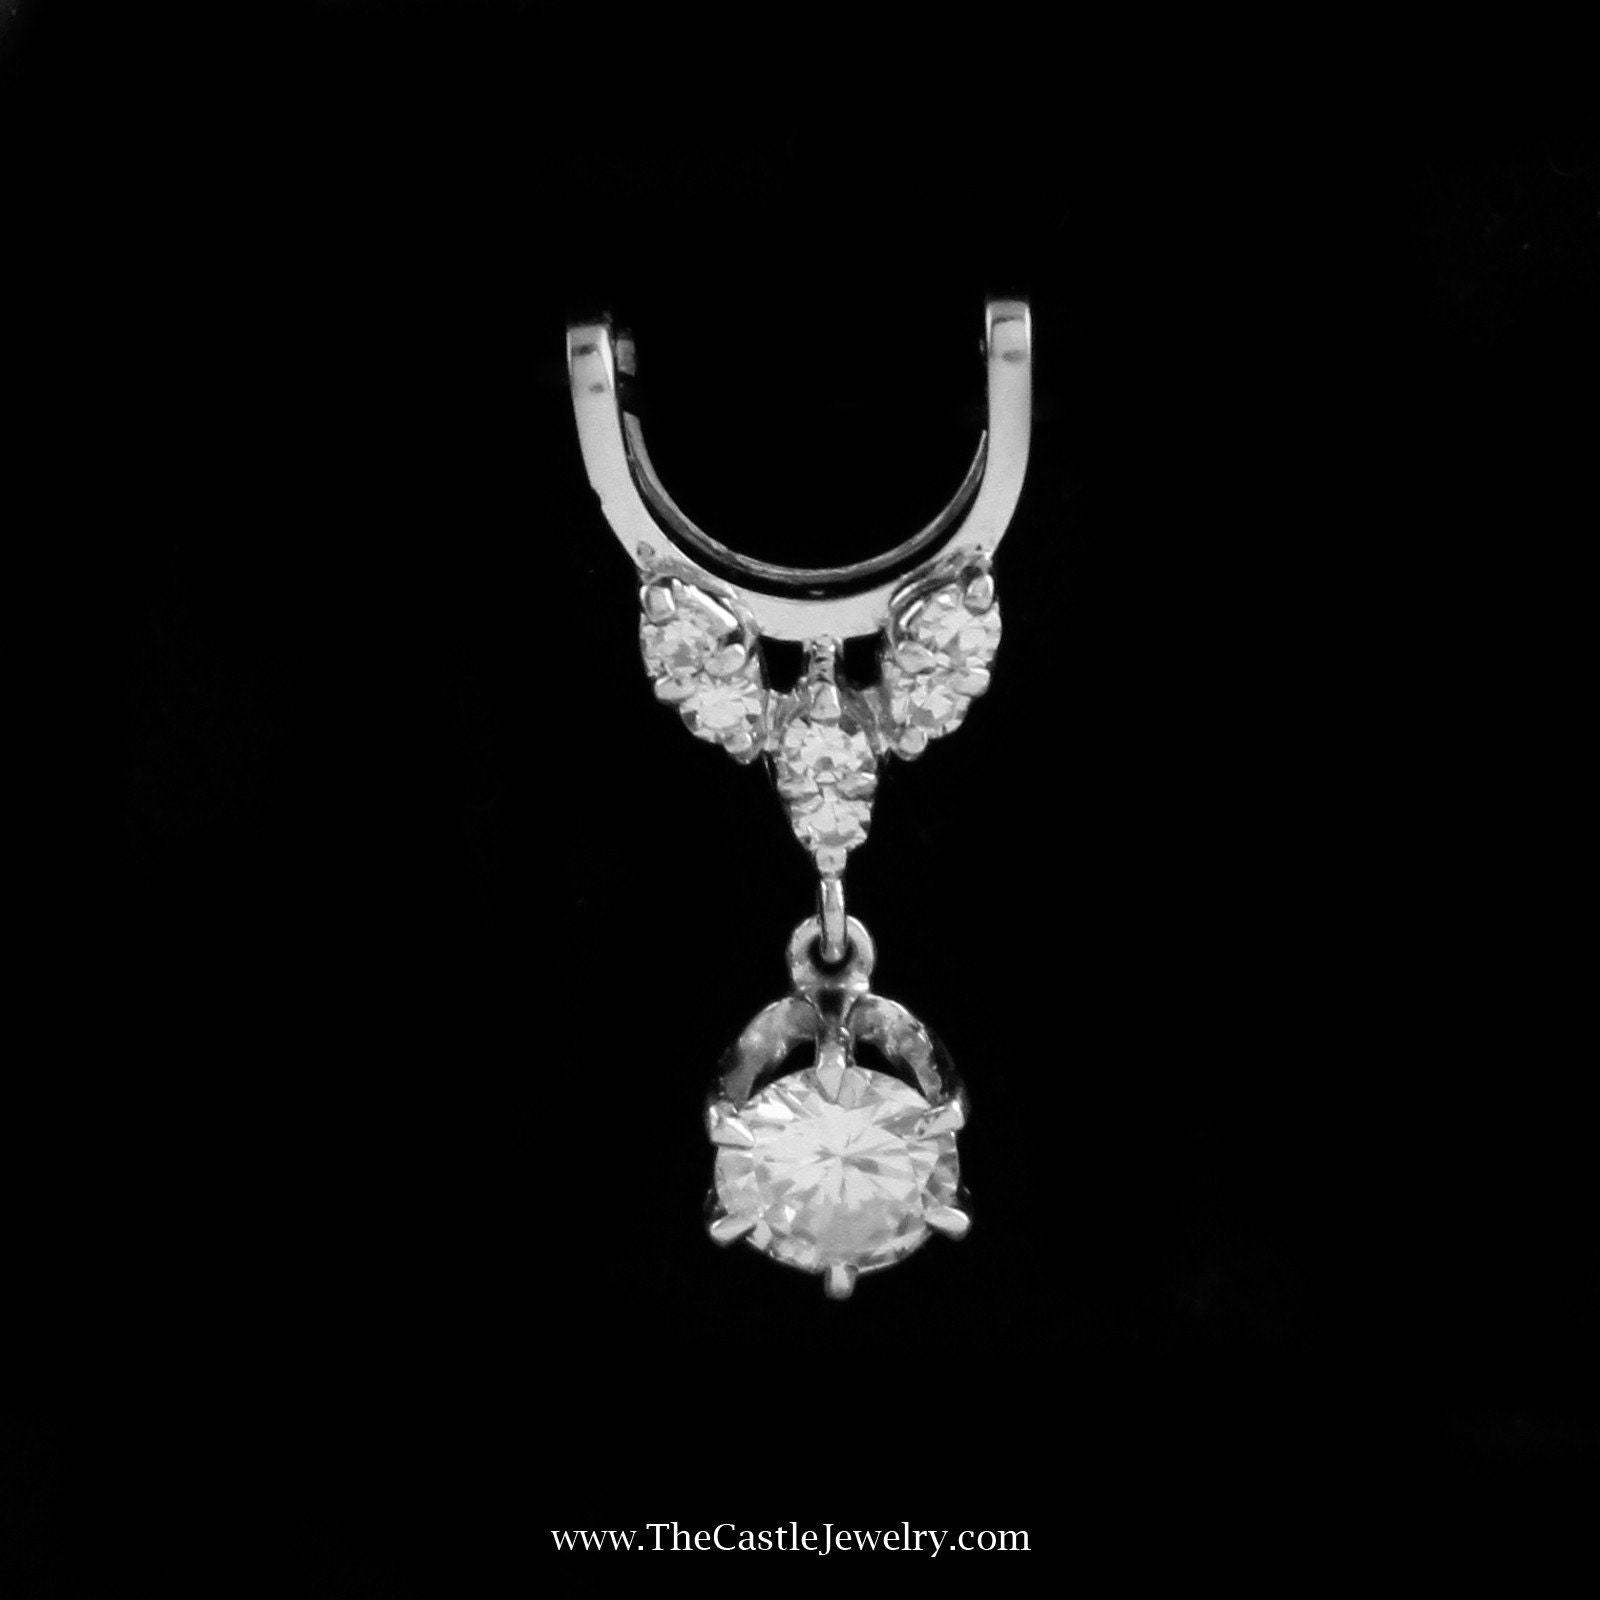 Beautiful Slide Pendant with Dangling Round Brilliant Cut Diamond in 18K White Gold